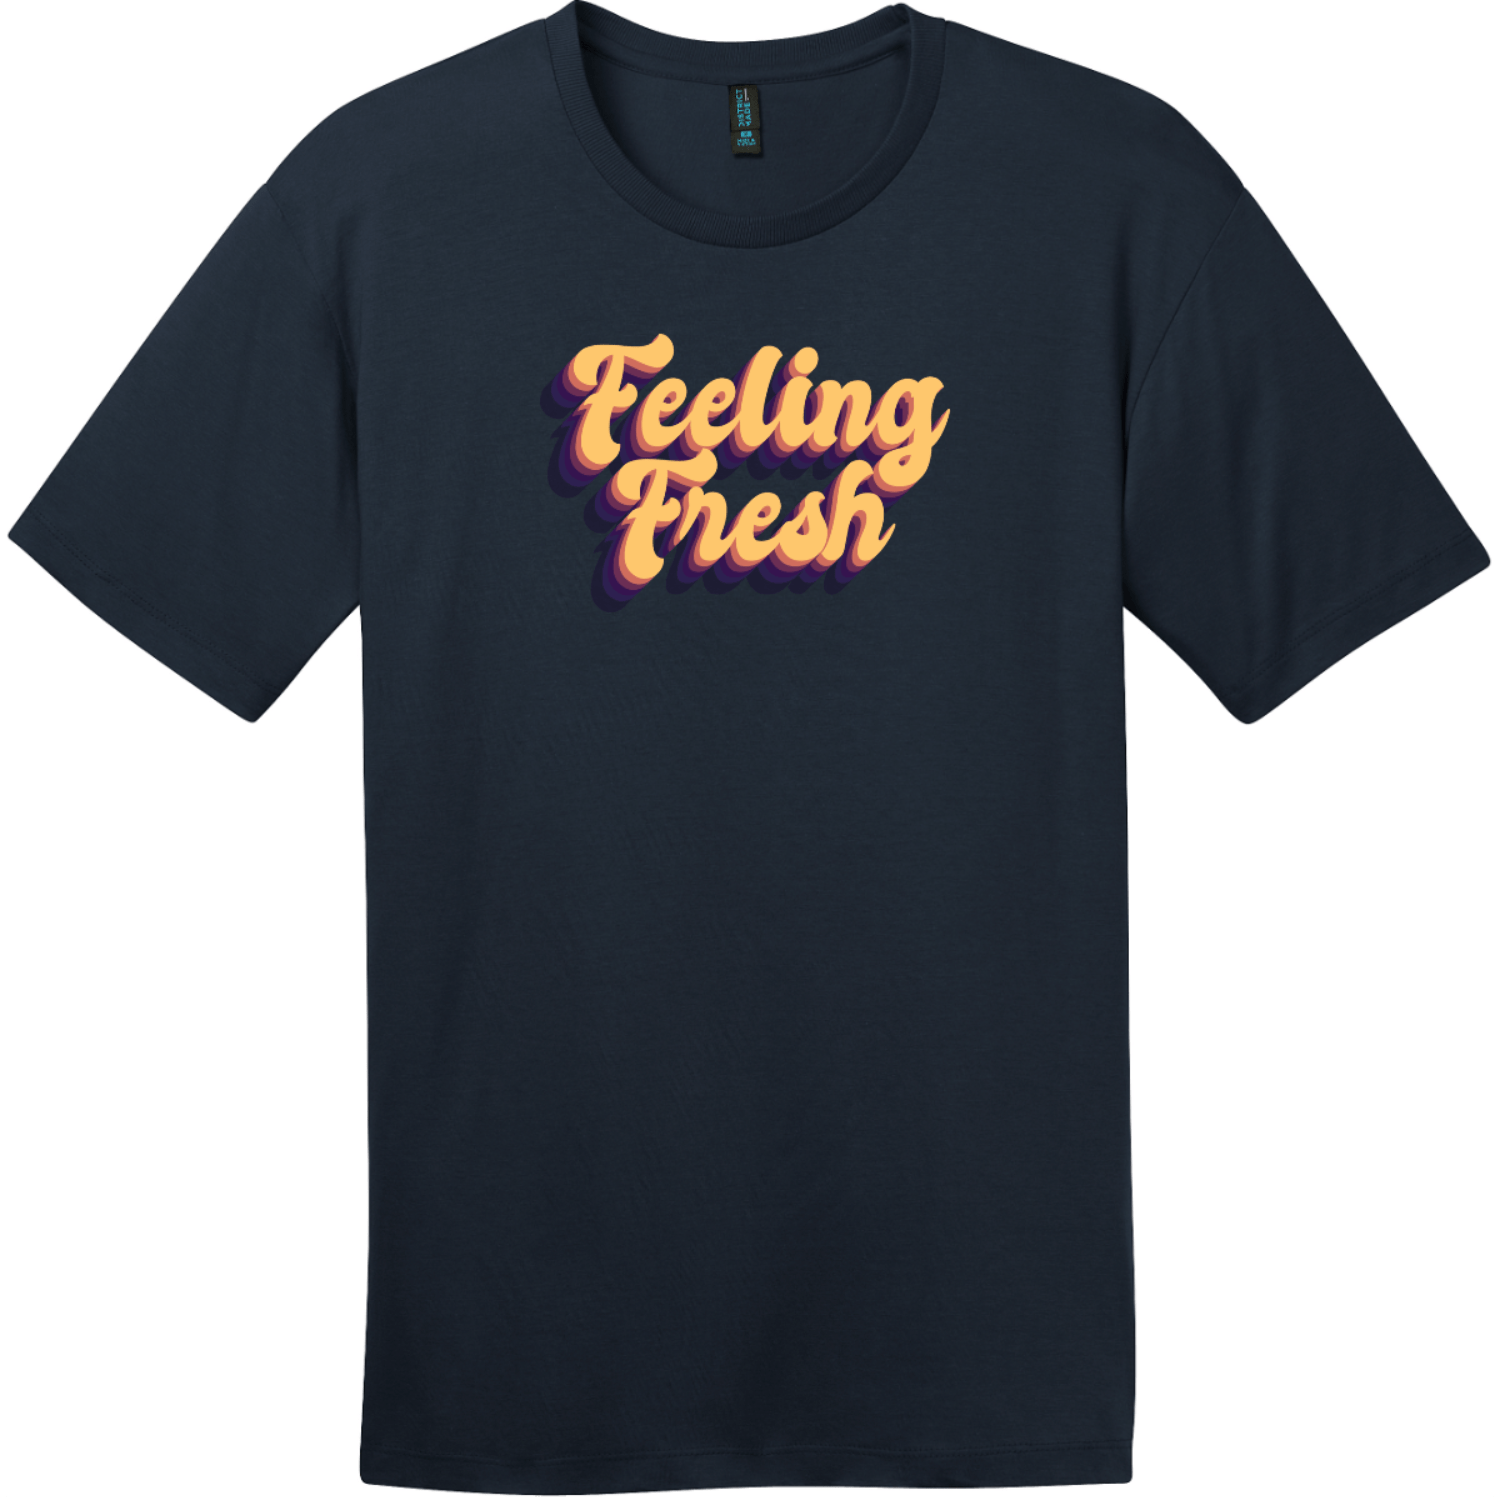 Feeling Fresh Retro T-Shirt New Navy District Perfect Weight Tee DT104